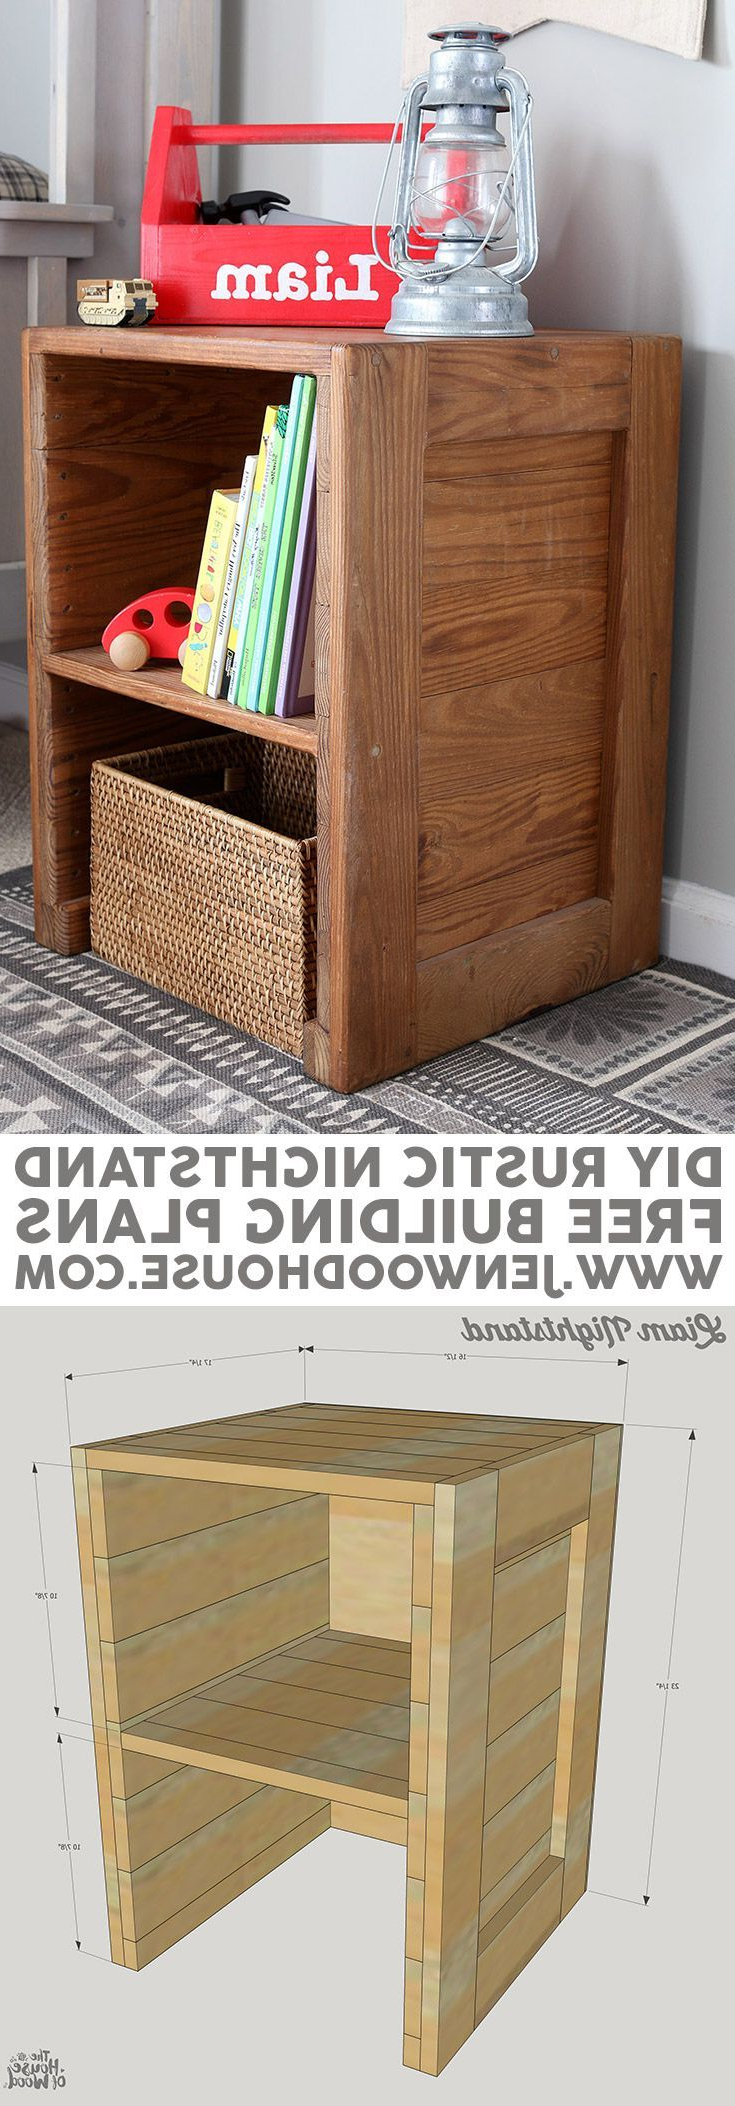 Free Plans: Diy Rustic Nightstand | #scrapworklove #getbuilding2015 With Regard To Marvin Rustic Natural 60 Inch Tv Stands (View 10 of 20)